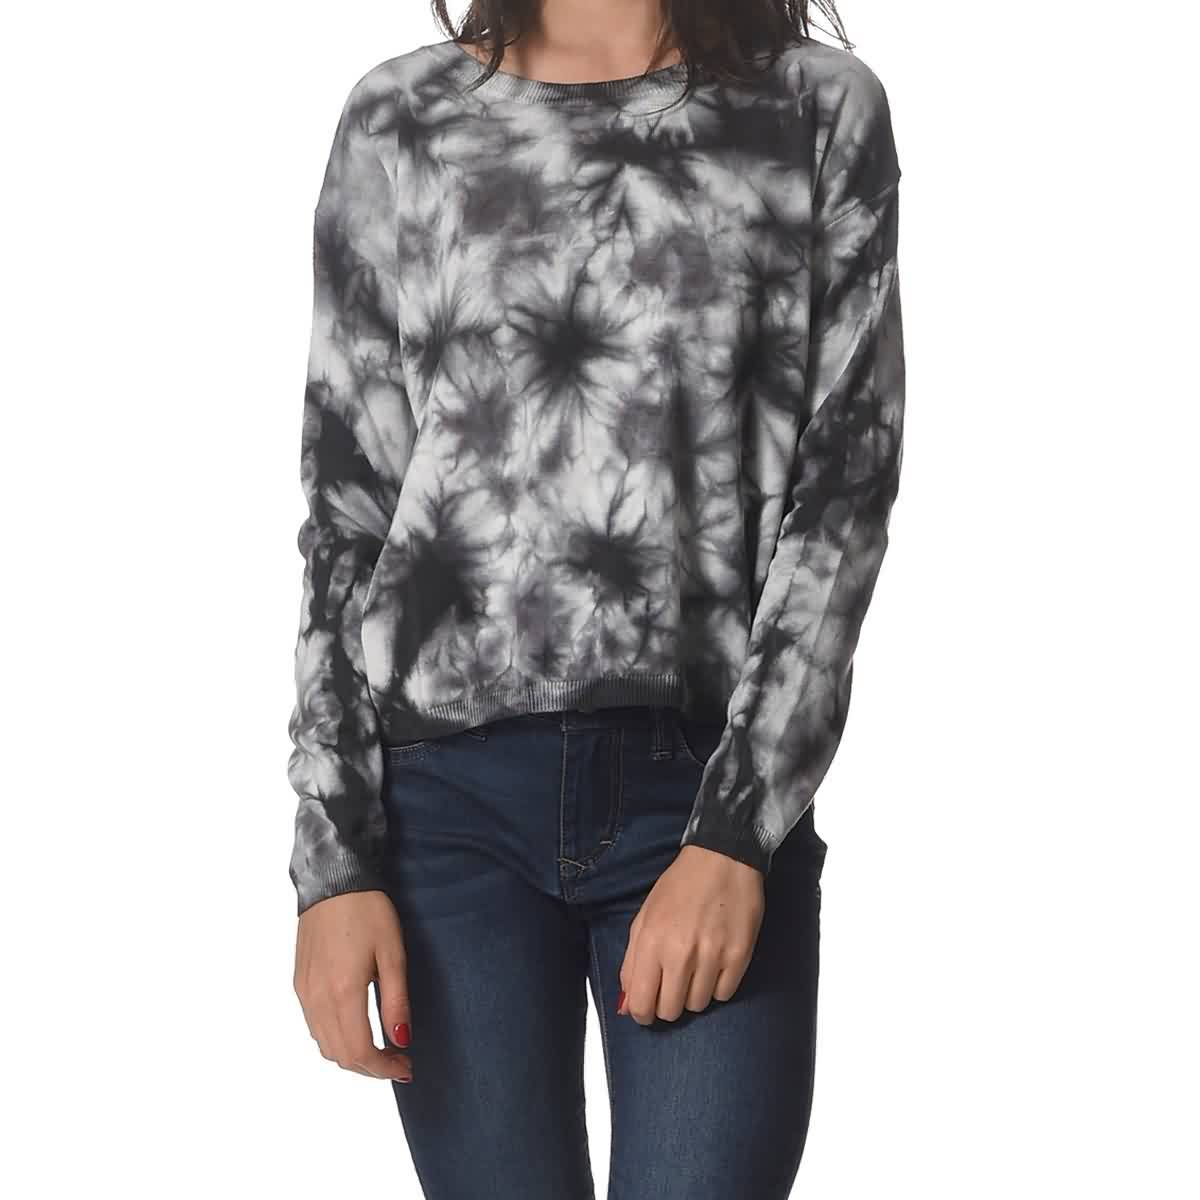 Rusty Panorama Crew Knit Women's Long-Sleeve Shirts - Charcoal